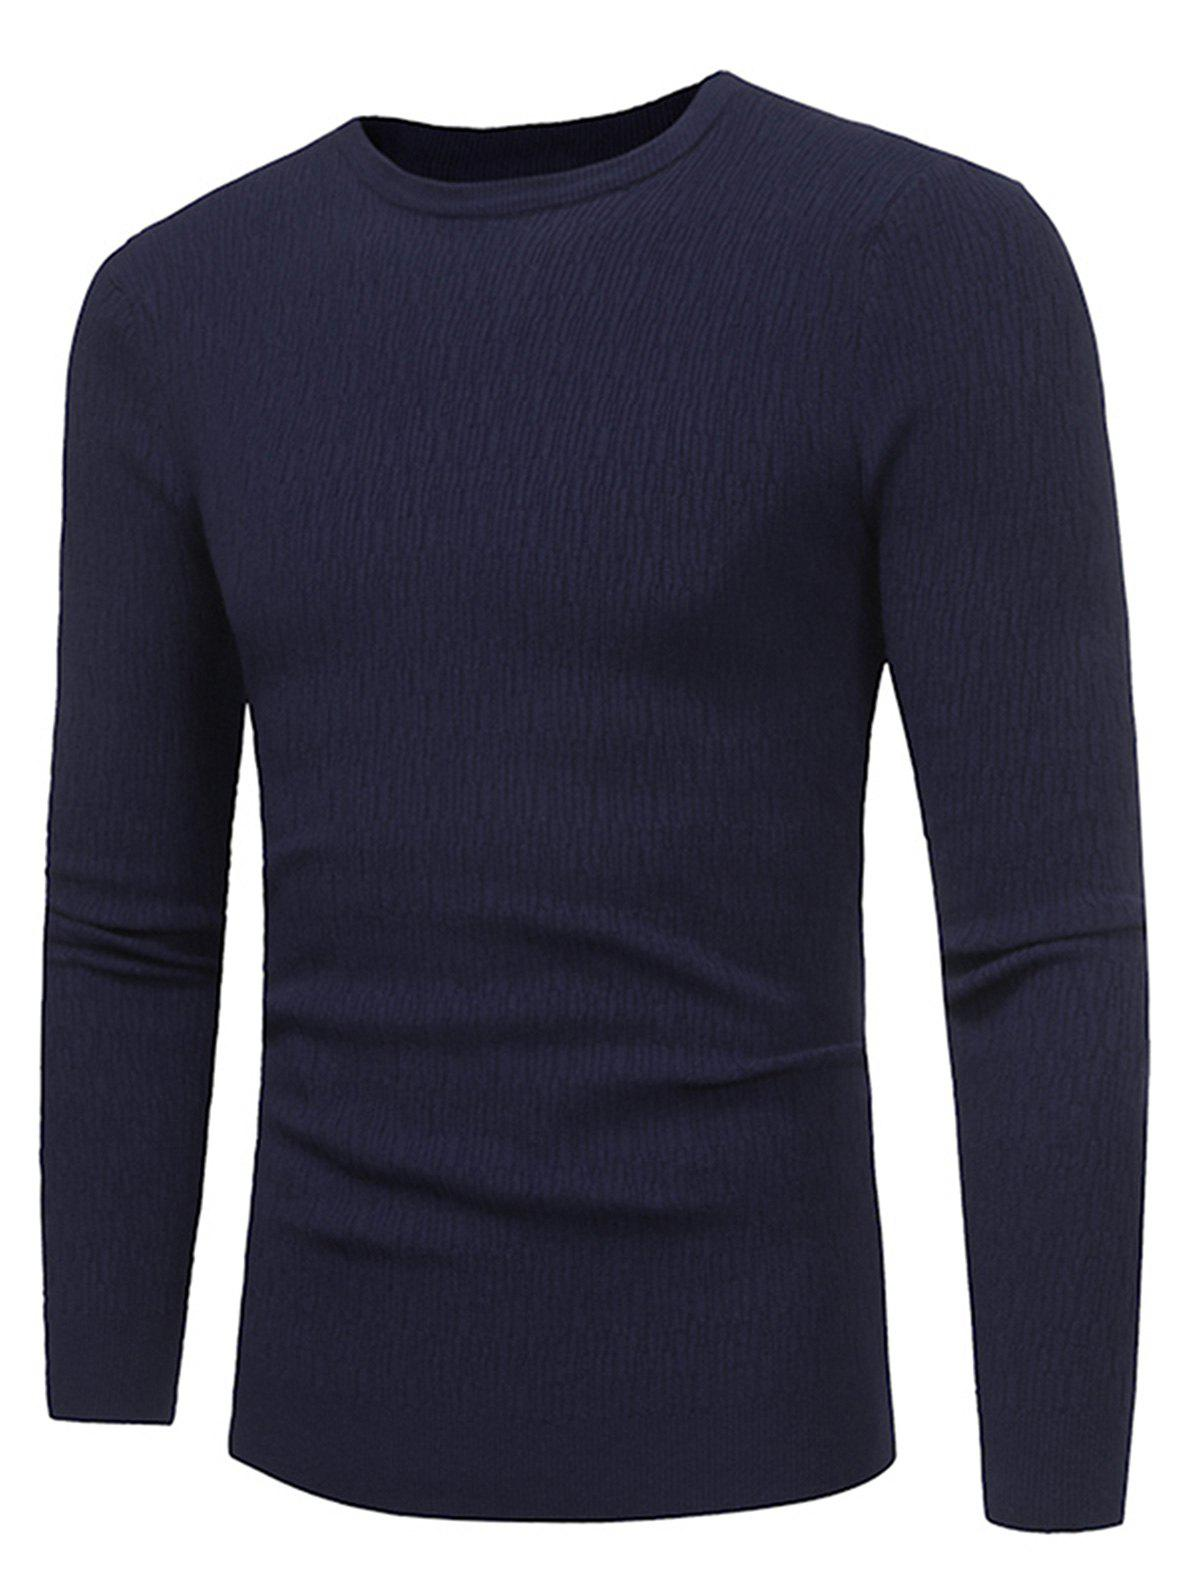 Store Stripe Jacquard Stretchy Pullover Sweater